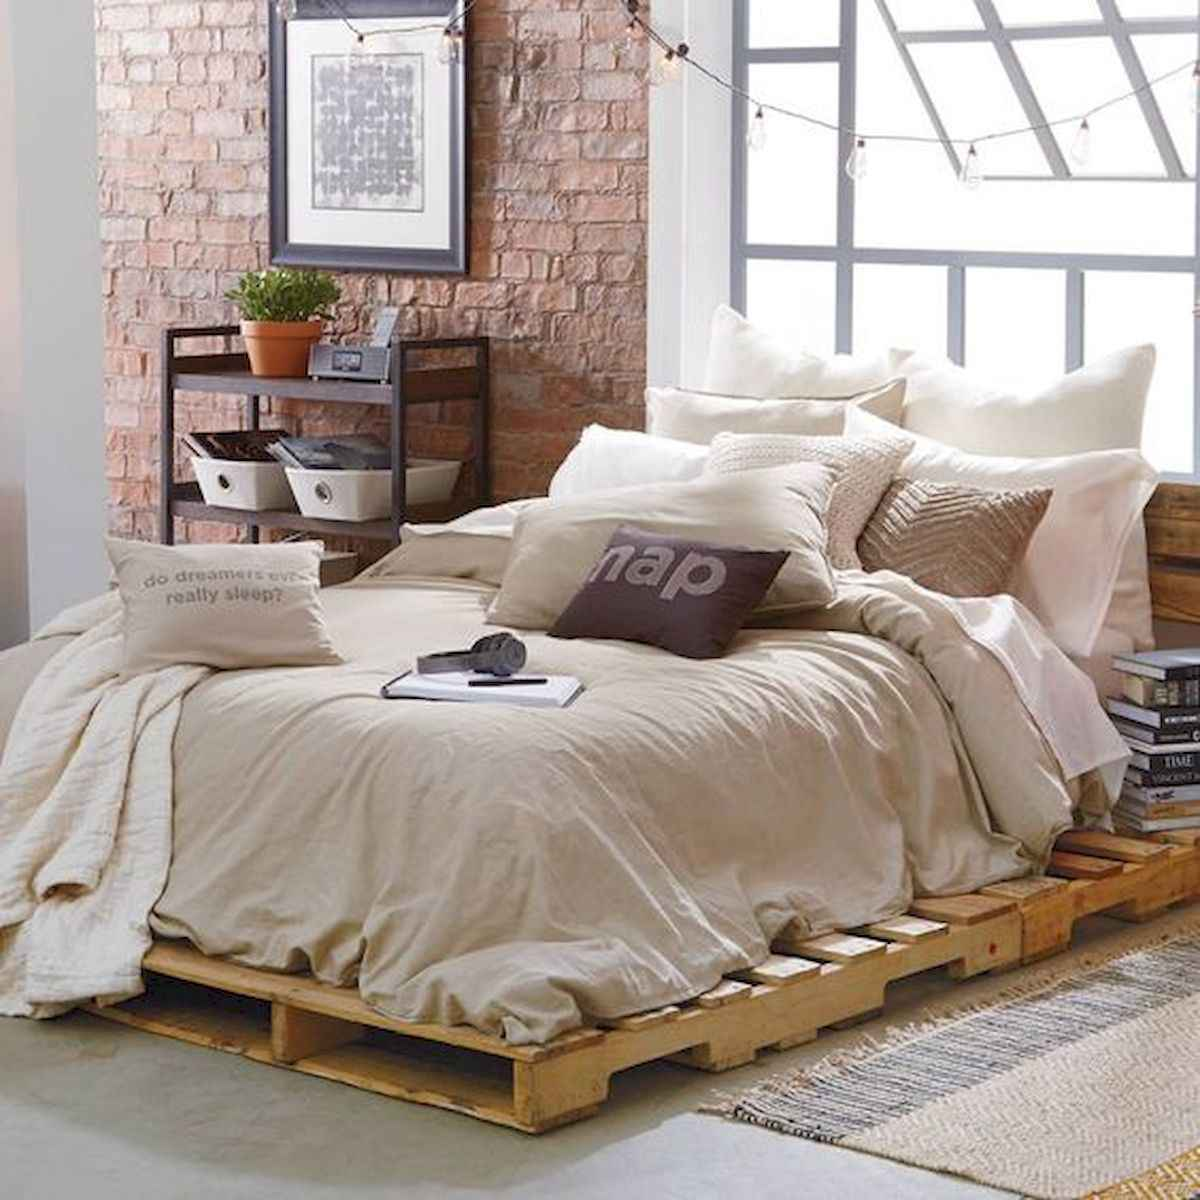 50 Creative Recycled DIY Projects Pallet Beds Design Ideas (18)